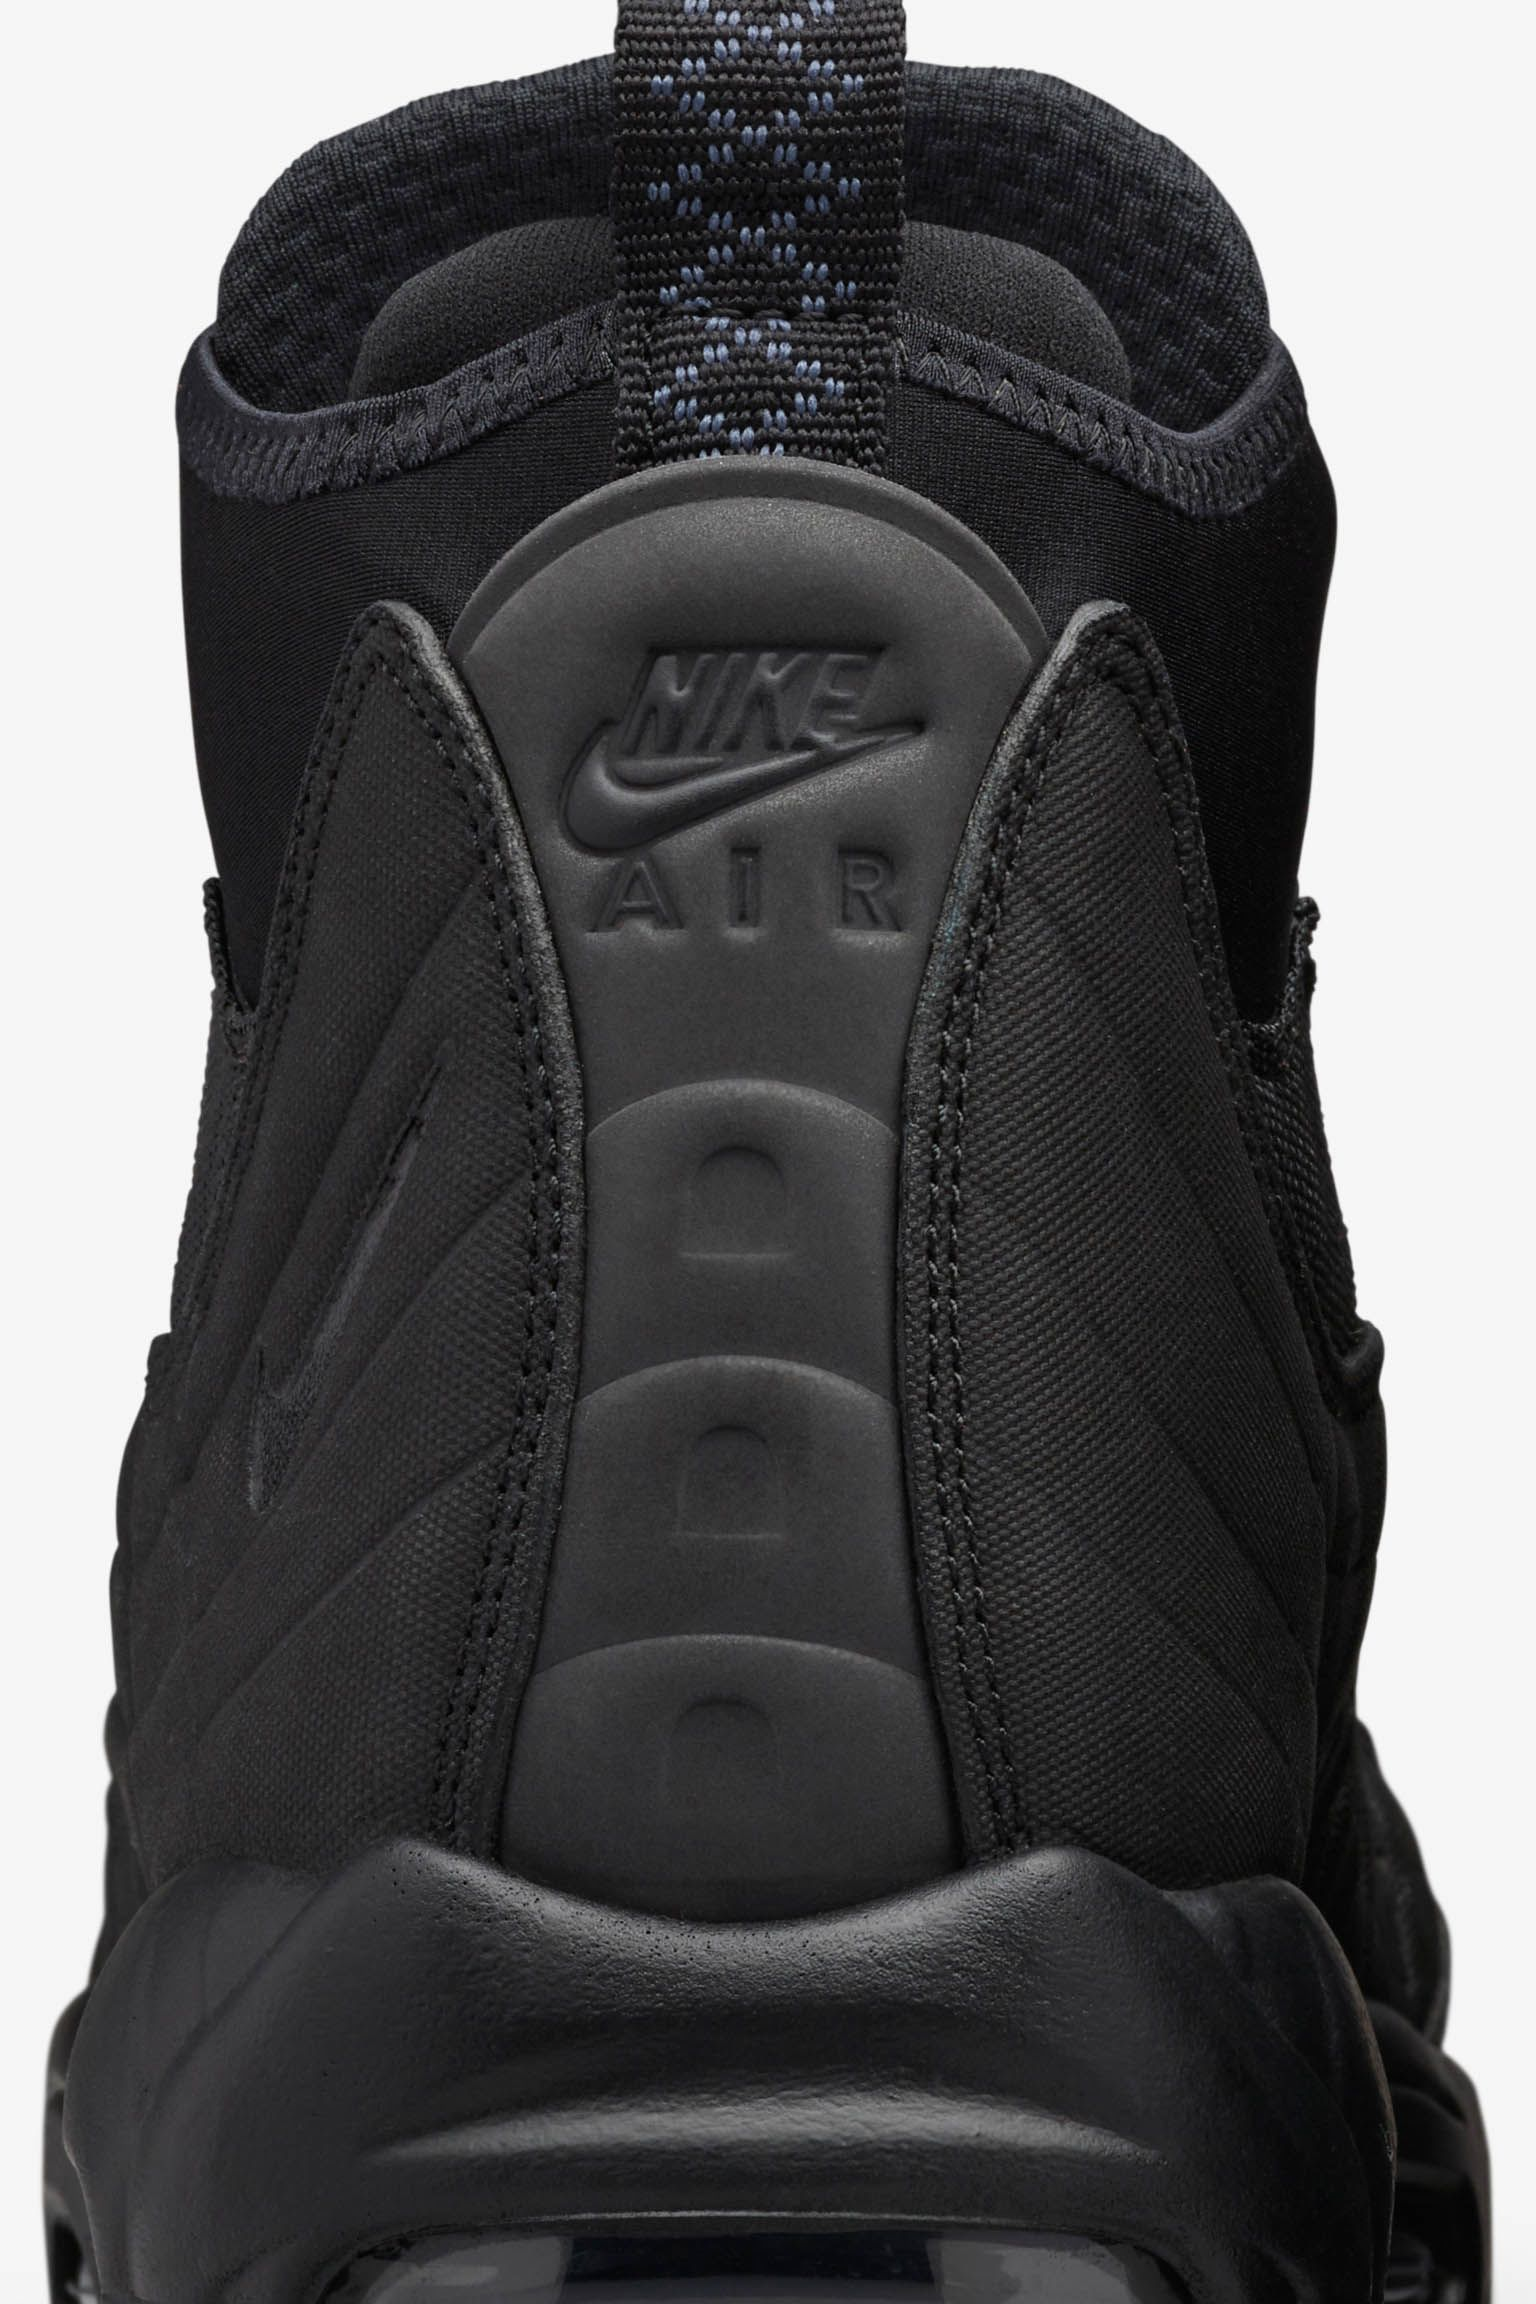 Nike Air Max 95 Sneakerboot 'Triple Black'